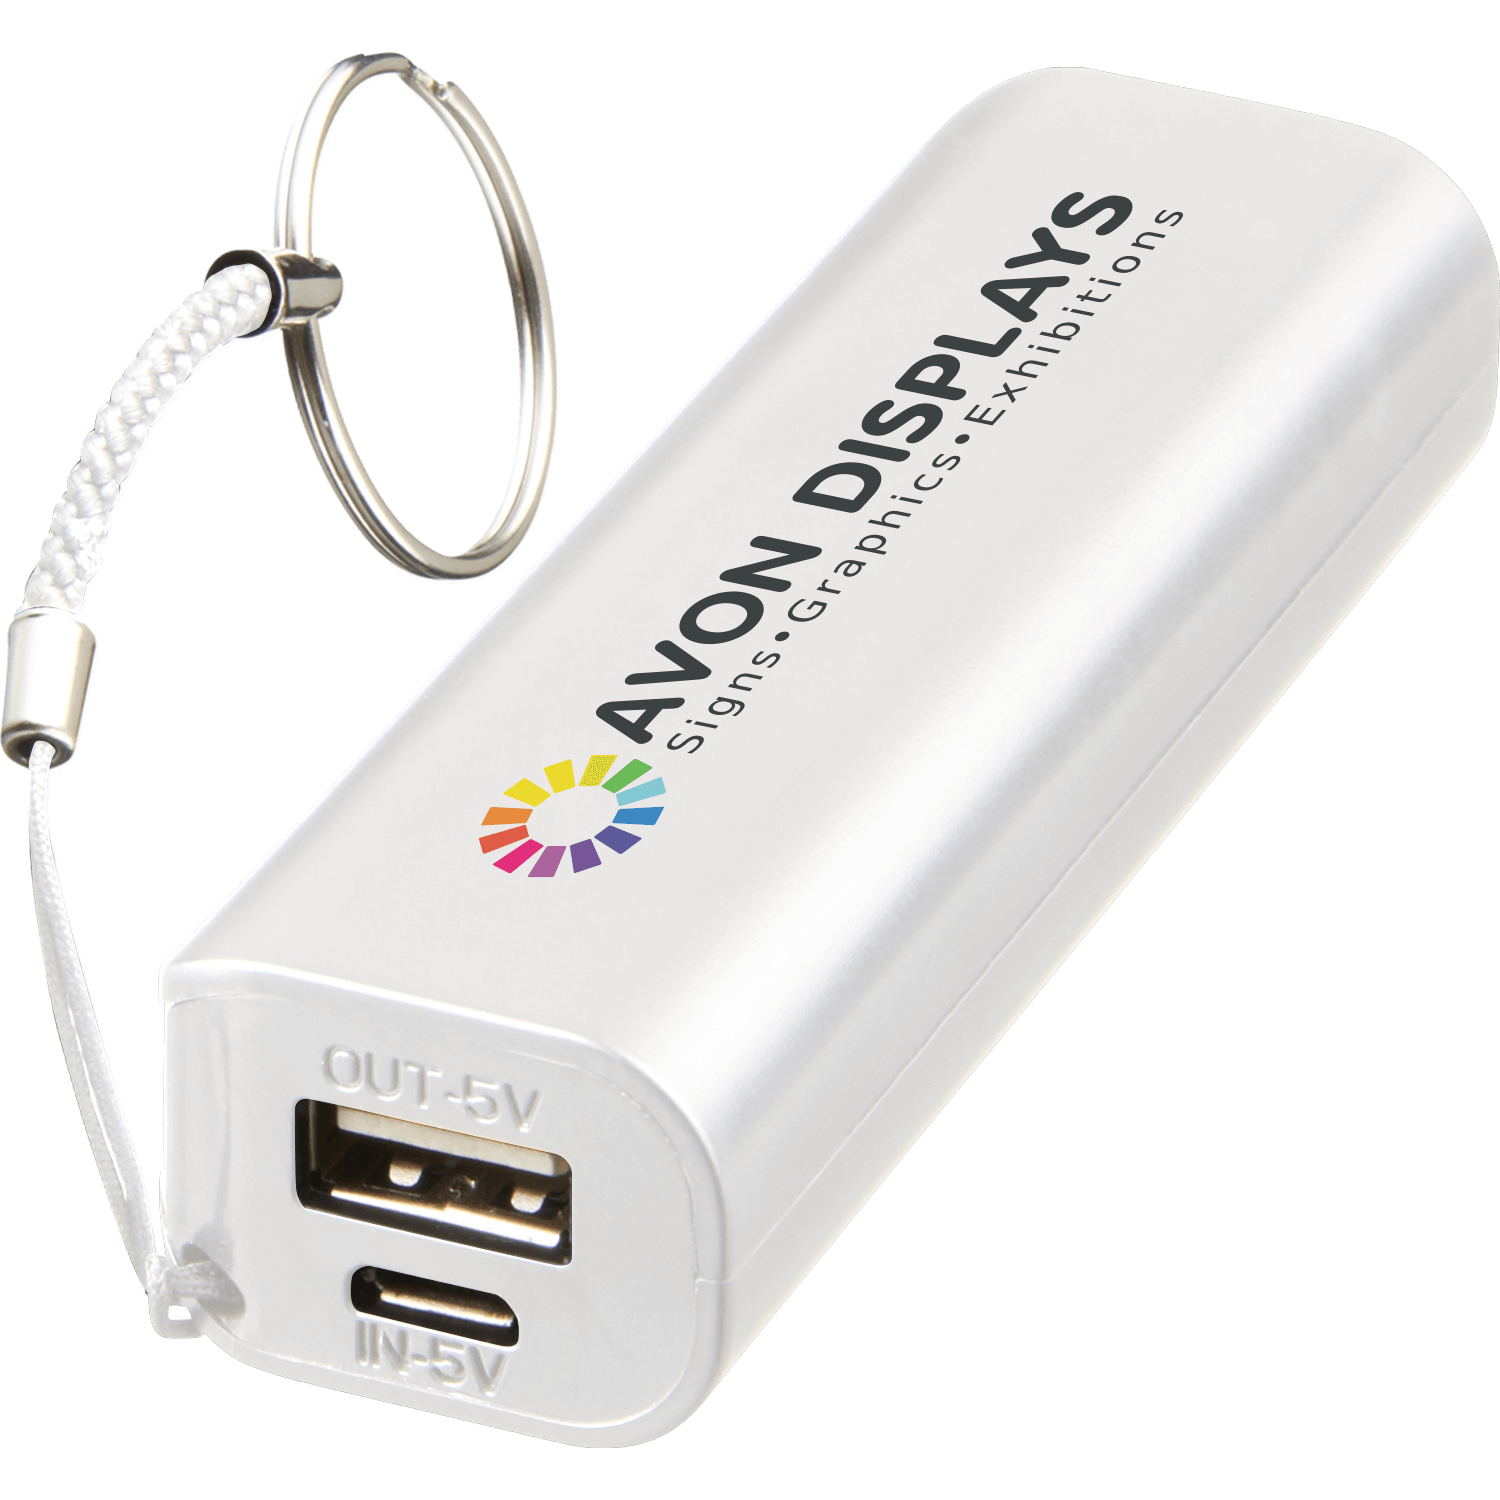 Apollo Power Bank Charger